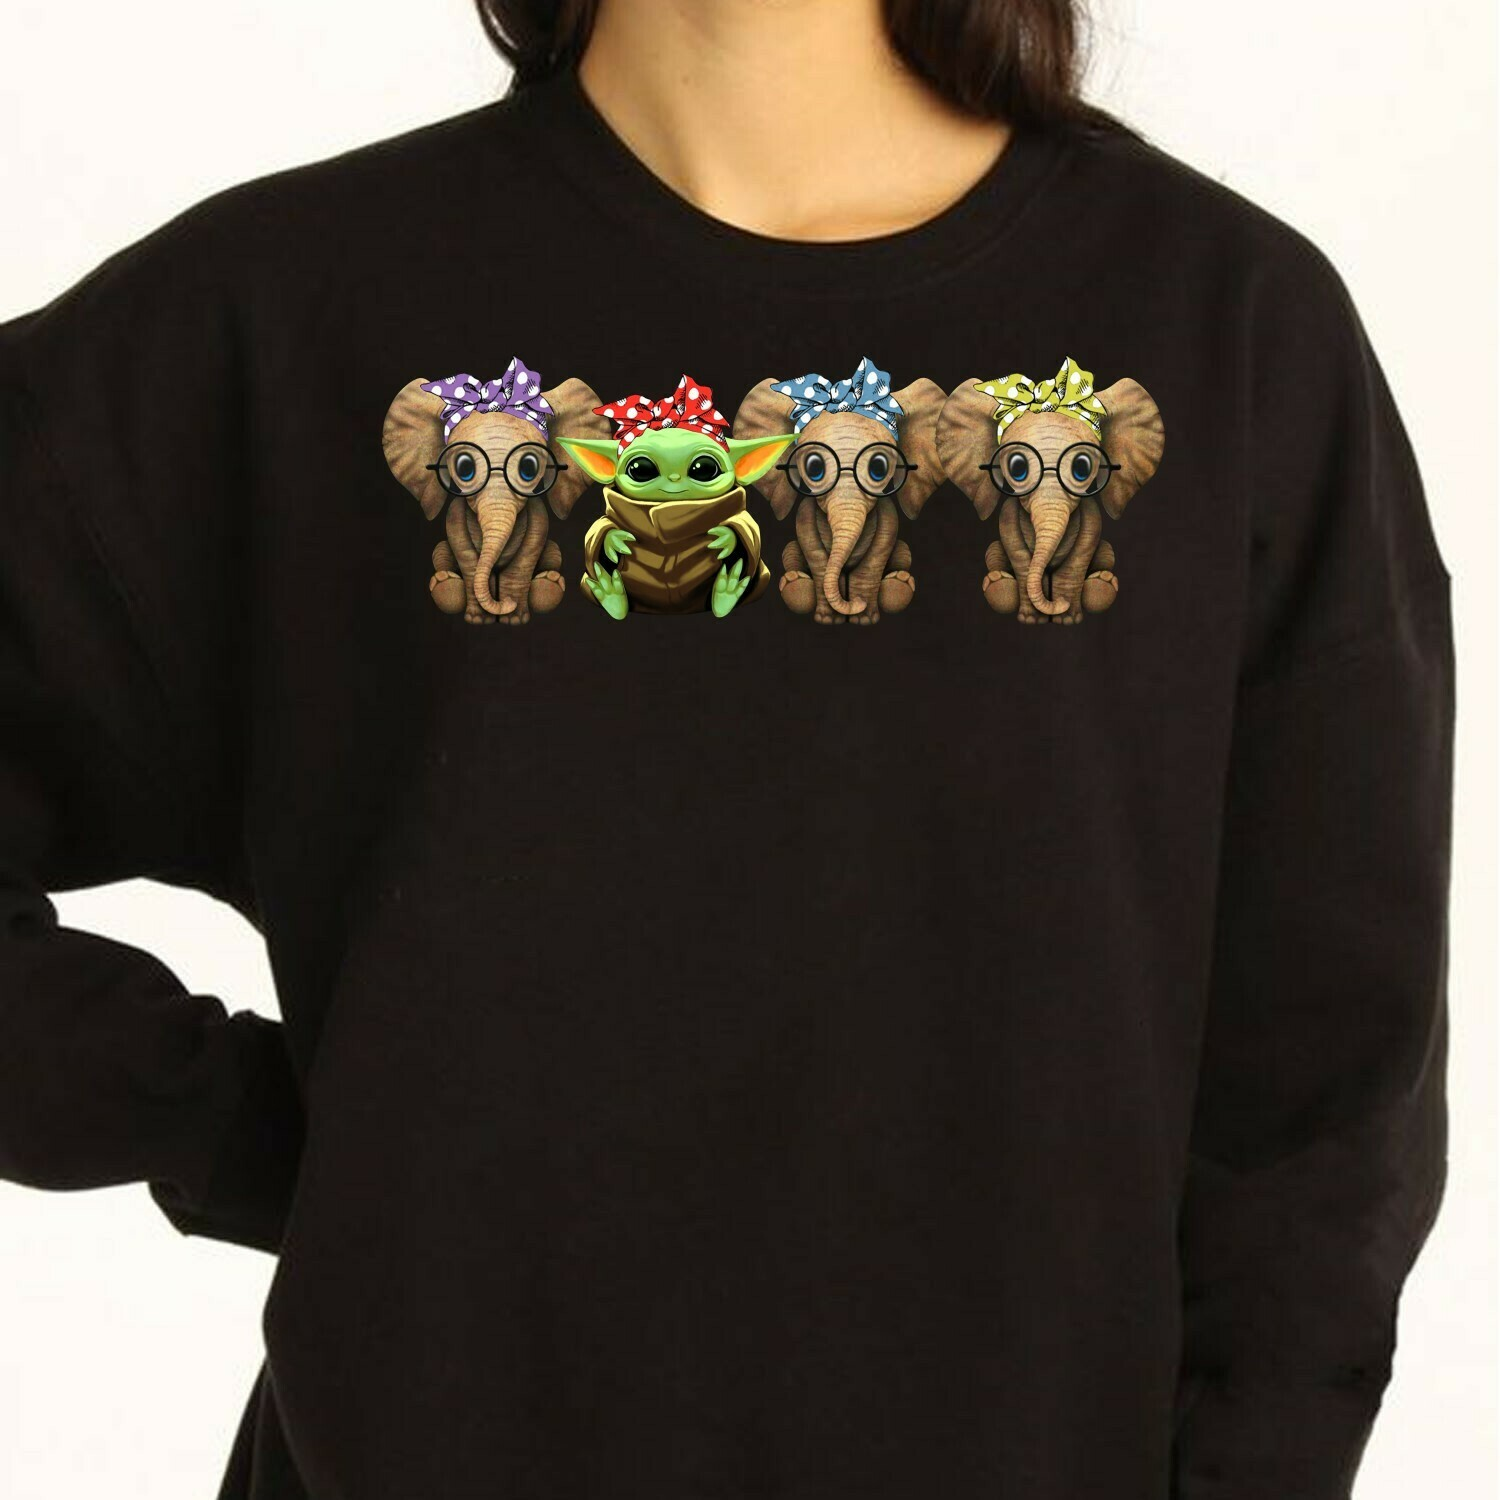 Beauty In Strength Cute Baby Yoda and elephant with bow Gift T-Shirt Long Sleeve Sweatshirt Hoodie Jolly Family Gifts